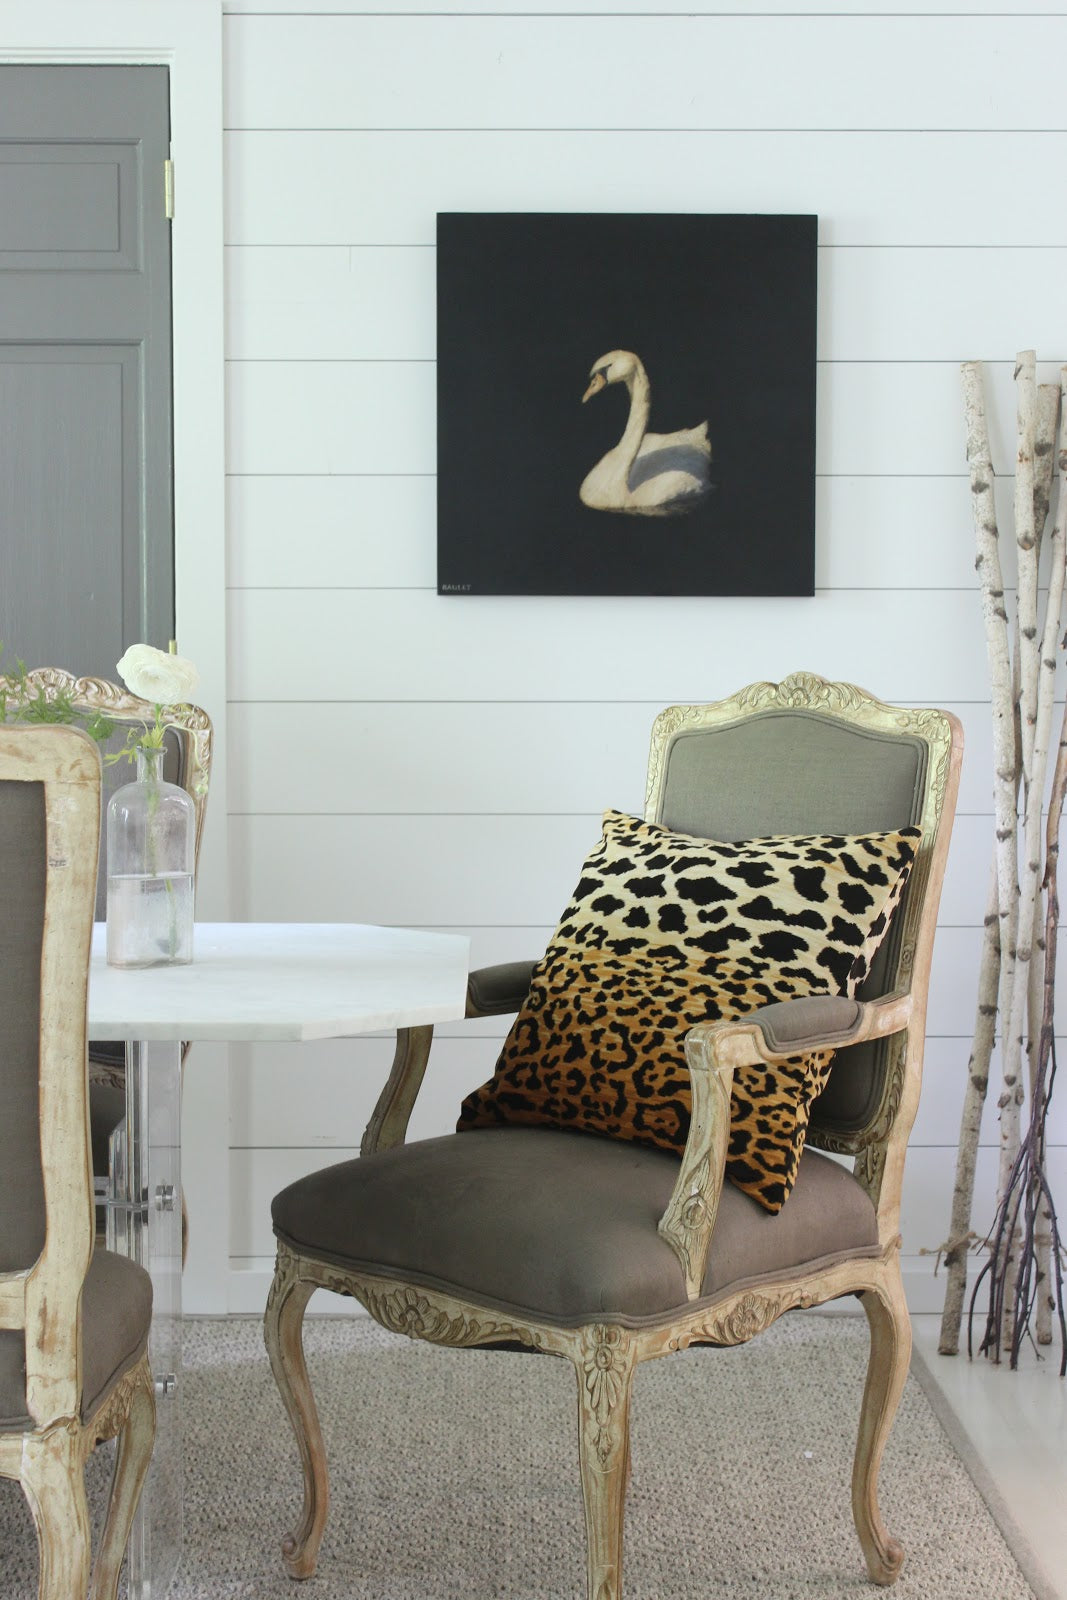 """Our friend Sherry Hart from <a href=""""http://designindulgence.blogspot.com/"""" target=""""_blank"""">Design Indulgence</a> makes a moody and elegant Dawne Raulet pop in her dining room."""